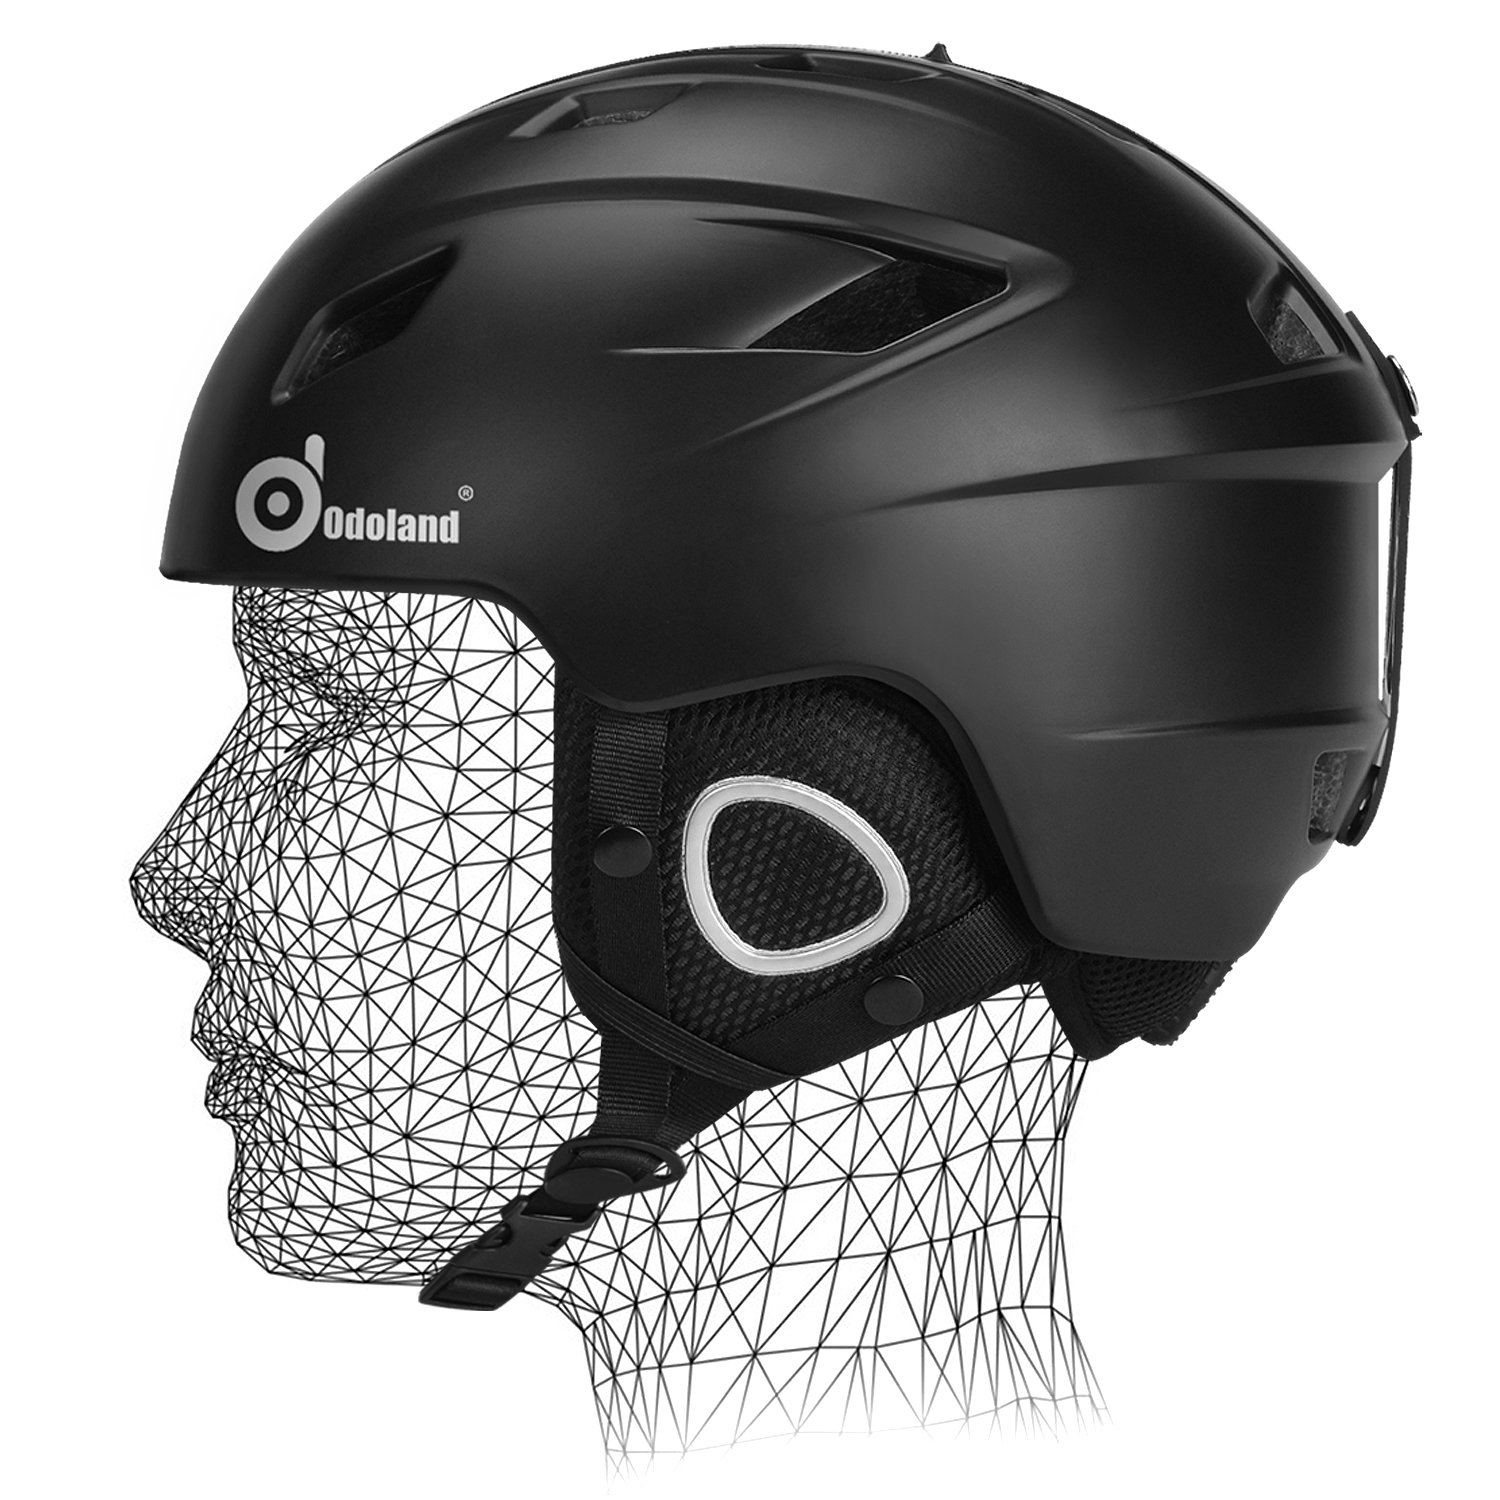 Odoland Unisex Ski Helmet for Adult Men Women Shockproof Ski Goggles Compatible Black by Odoland